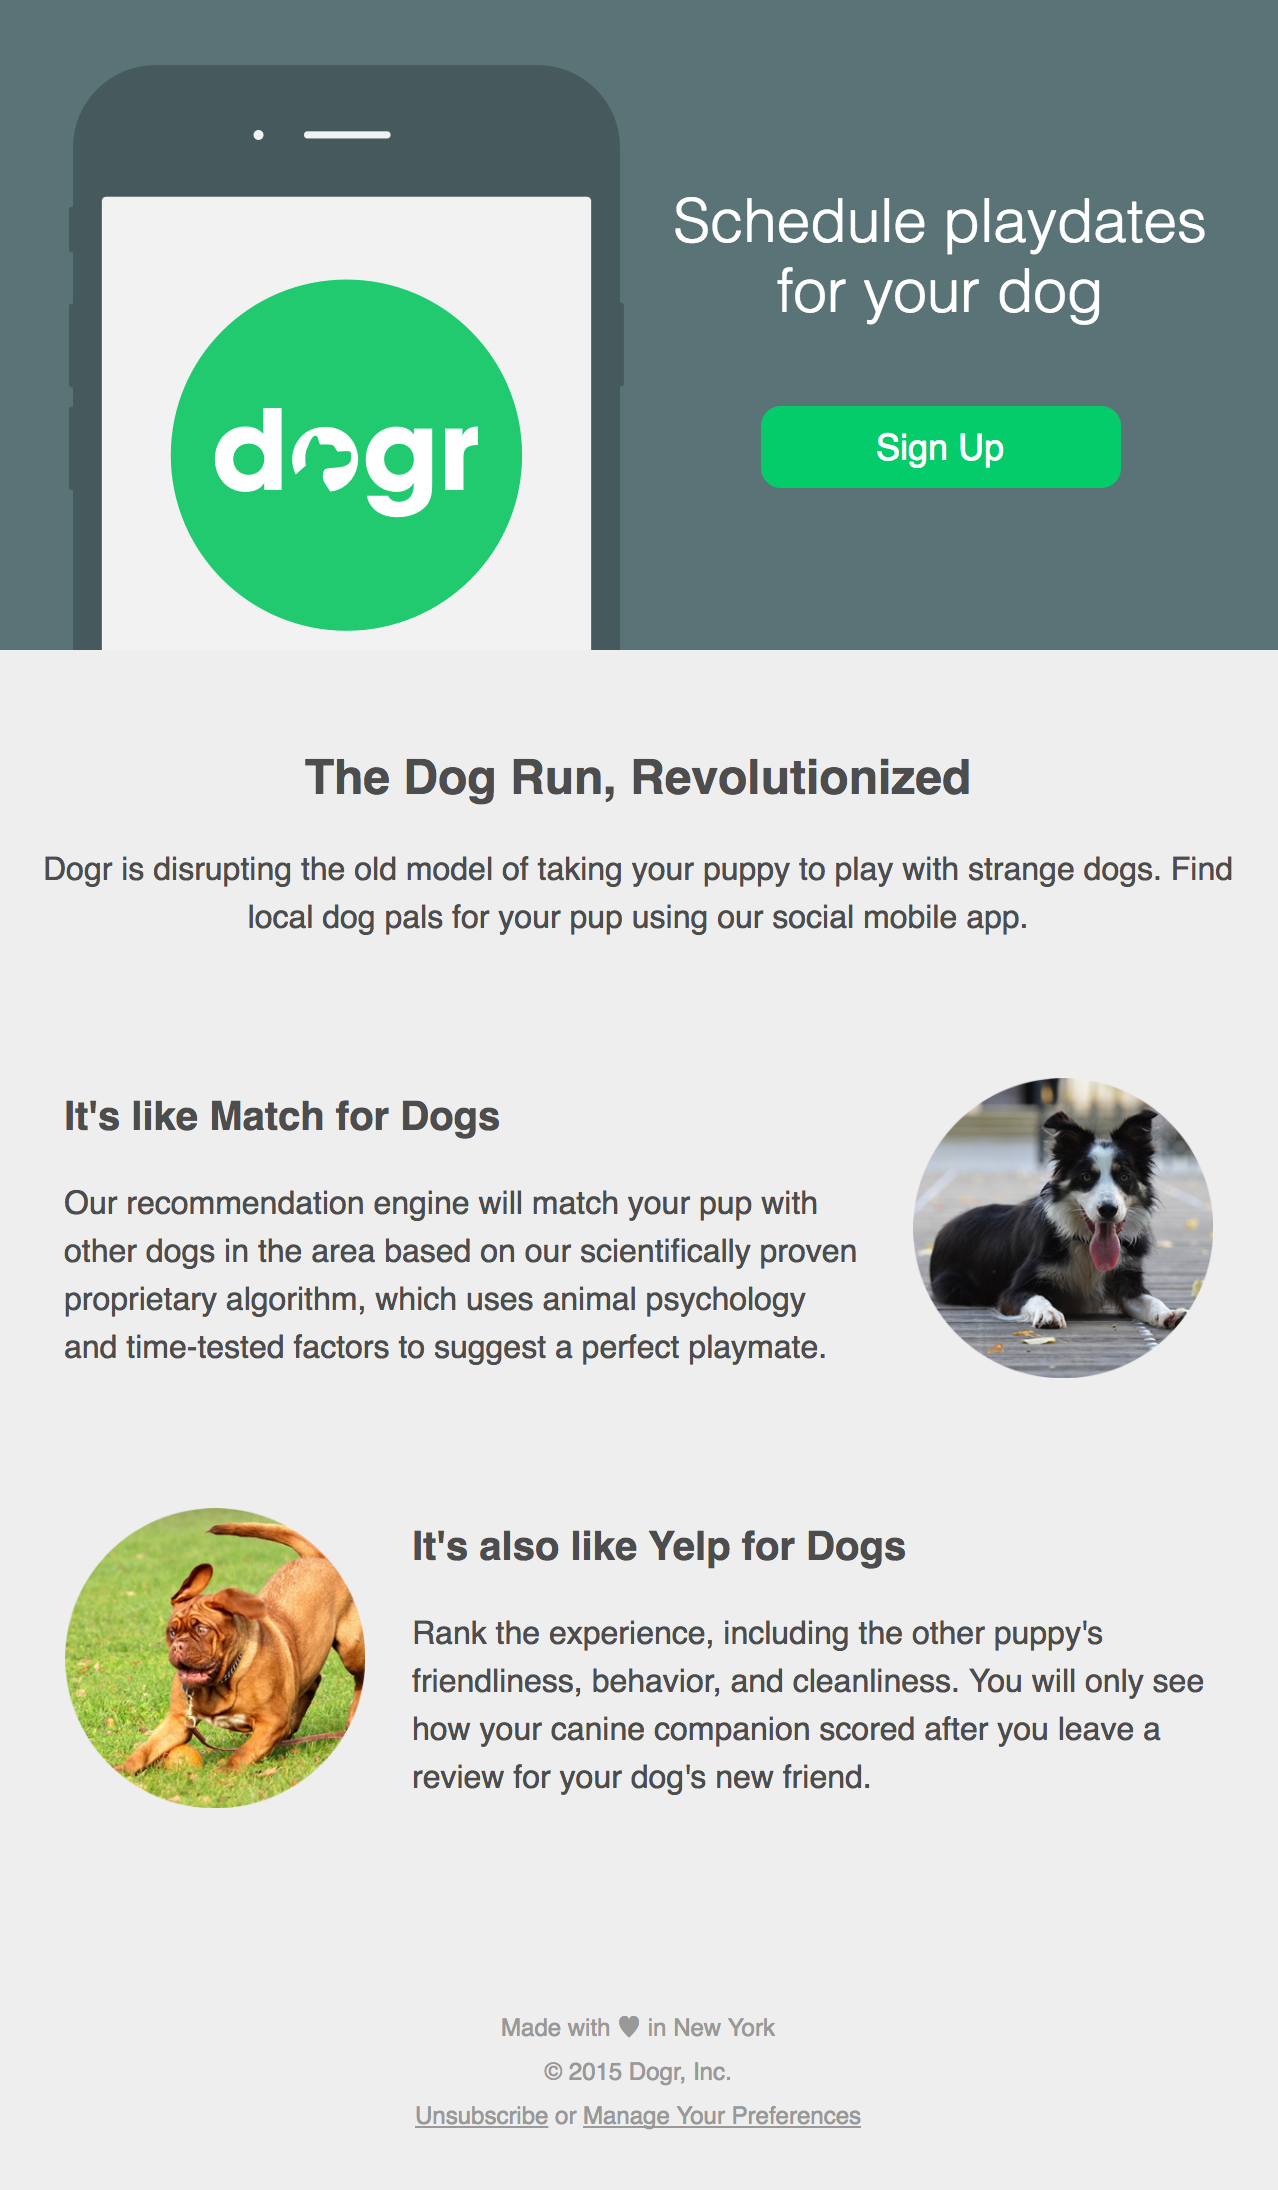 Dogr email